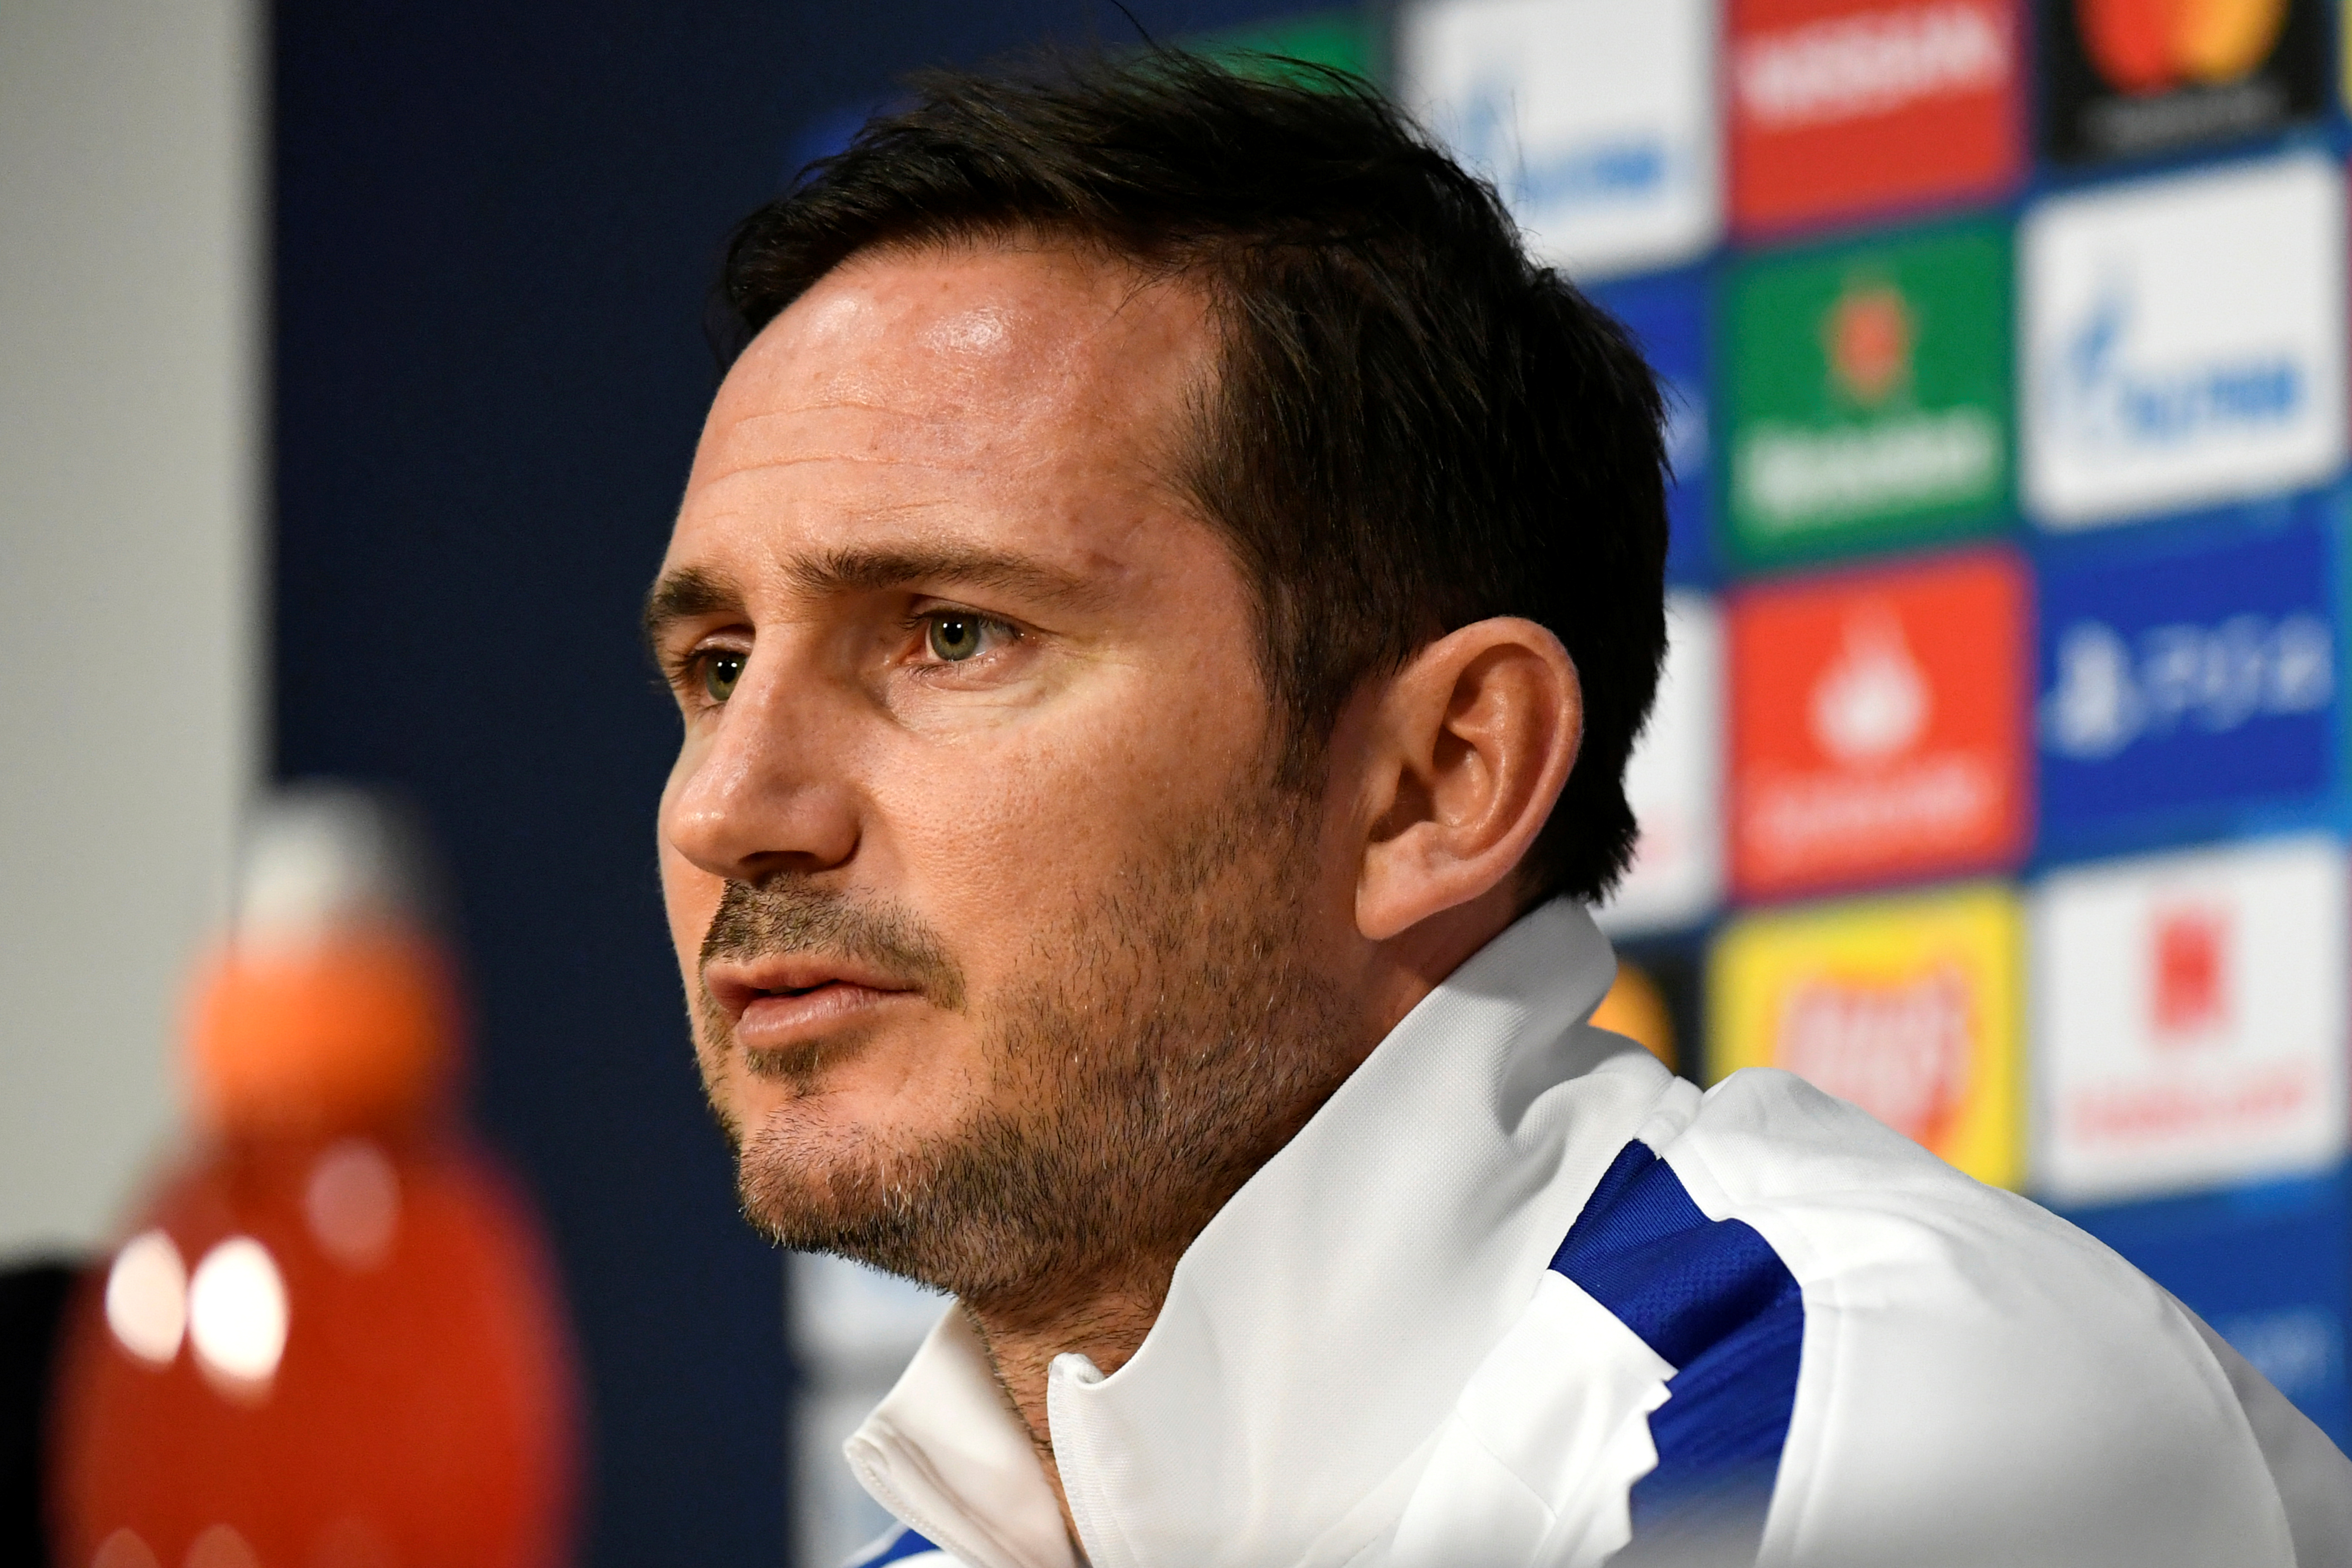 Lampard has Emery on the ropes